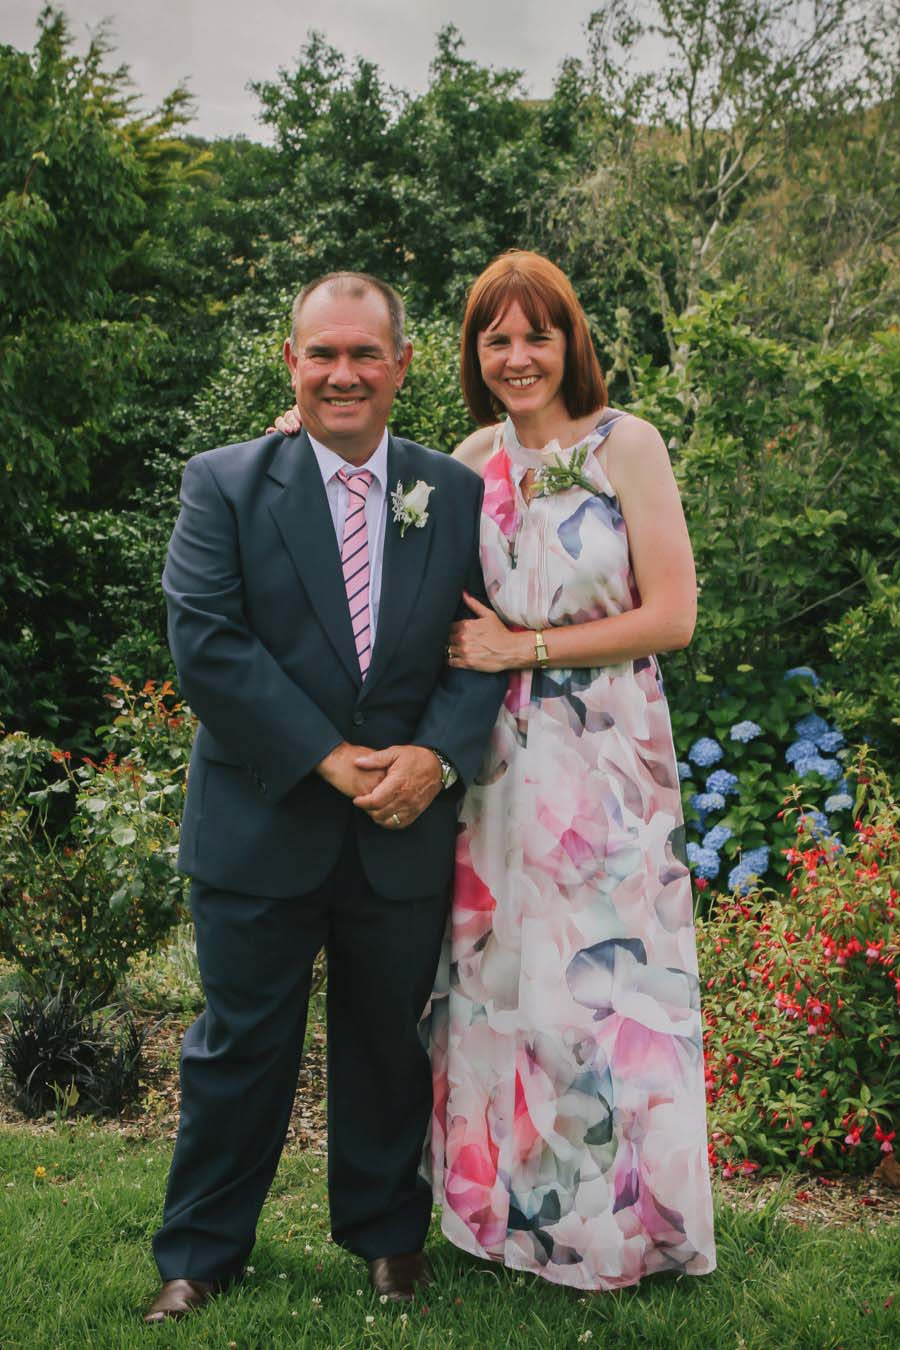 silverdale_wedding_nz_photographer-91